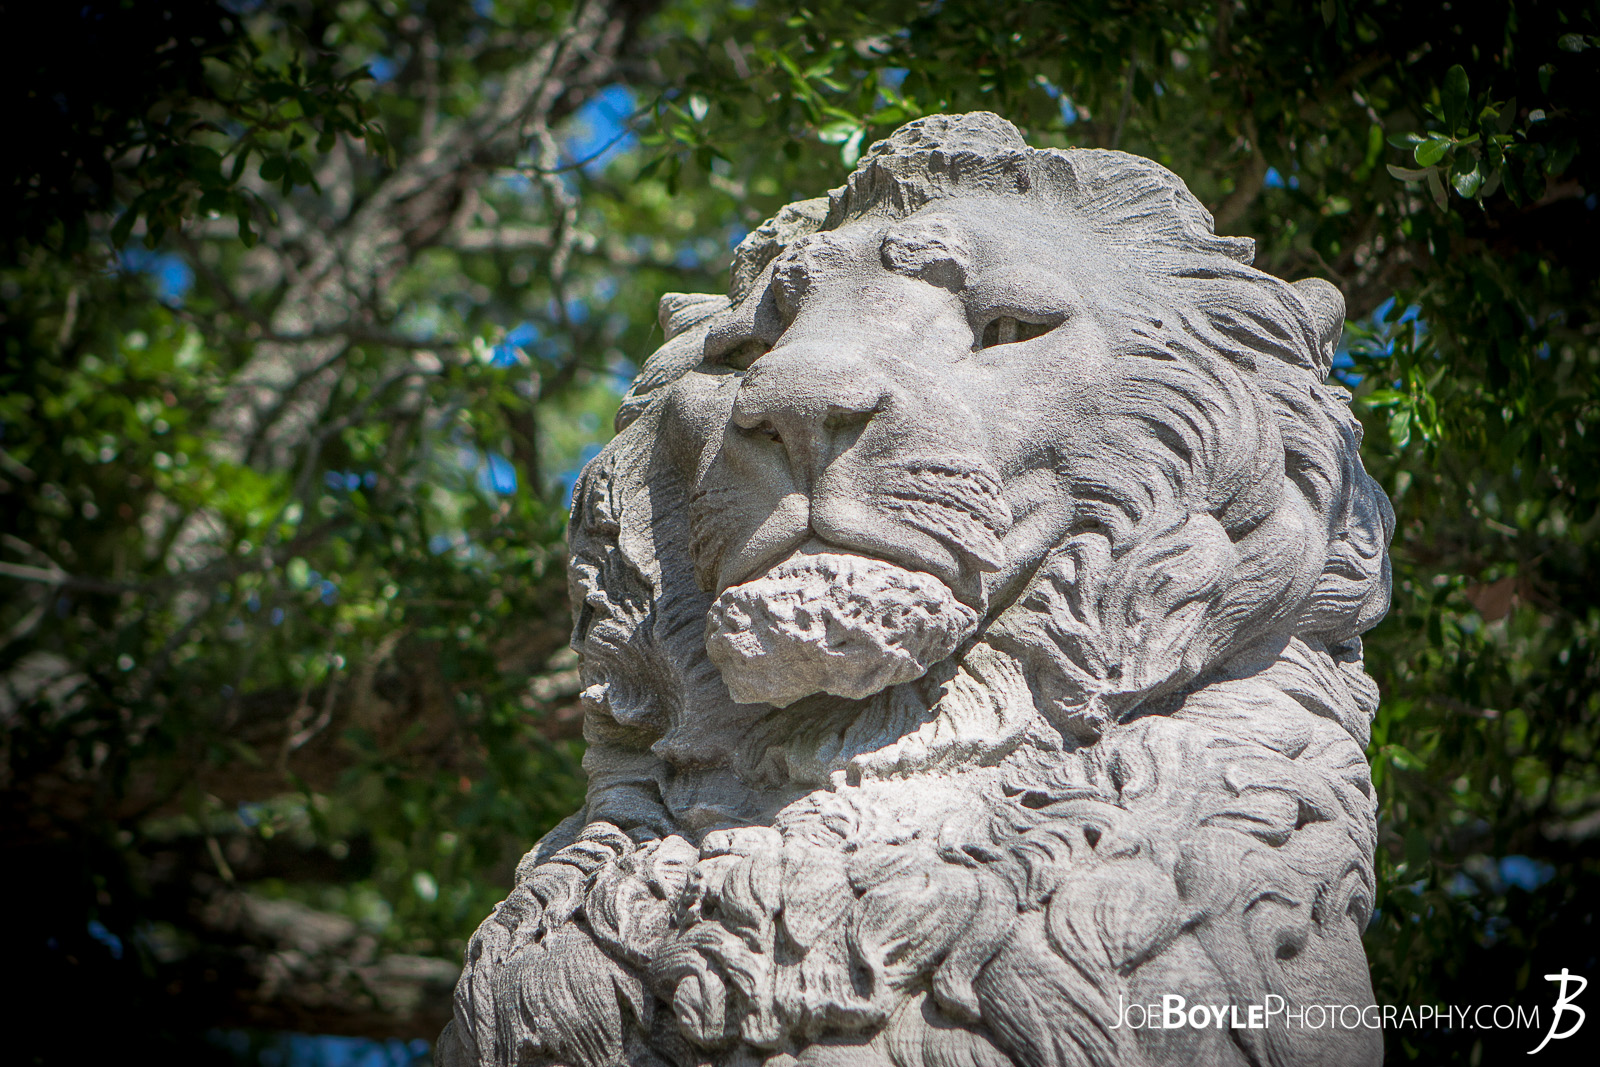 When I was visiting friends in Virginia this past summer we made it a point to see some of the historical sites in the area. One of which included the Mariner's Museum. This is an image of 1 of the 4 Lion Statues on the bridge, which is really a dam that creates Lake Maury and provides a great view of the James River.